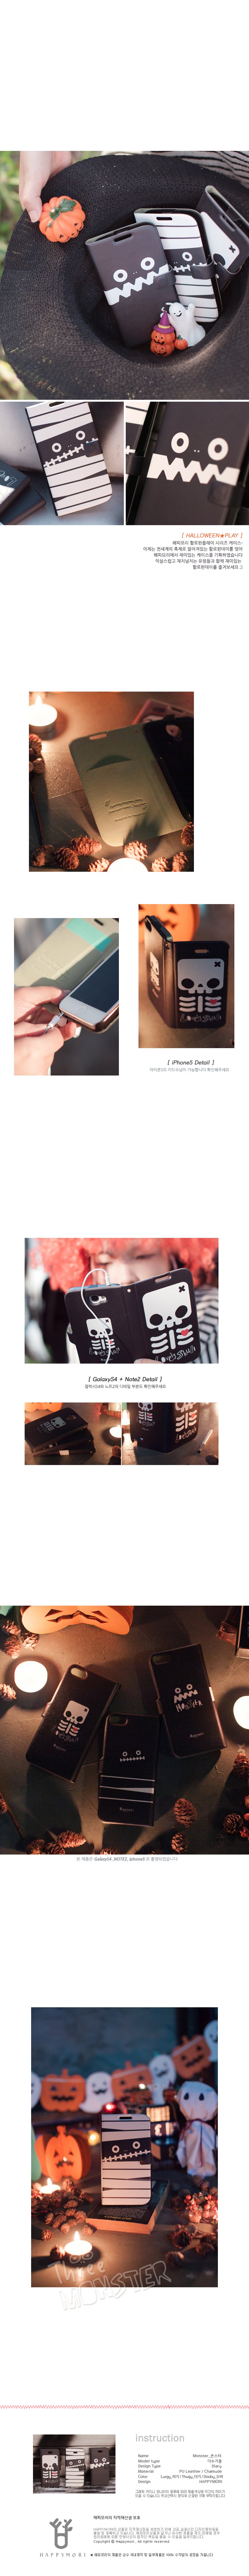 [HAPPYMORI] Flip Cover Case _ Monster(iPhone6Plus,iPhone6Plus_s,Galaxy S6Edge,Galaxy S6,Galaxy Note4)